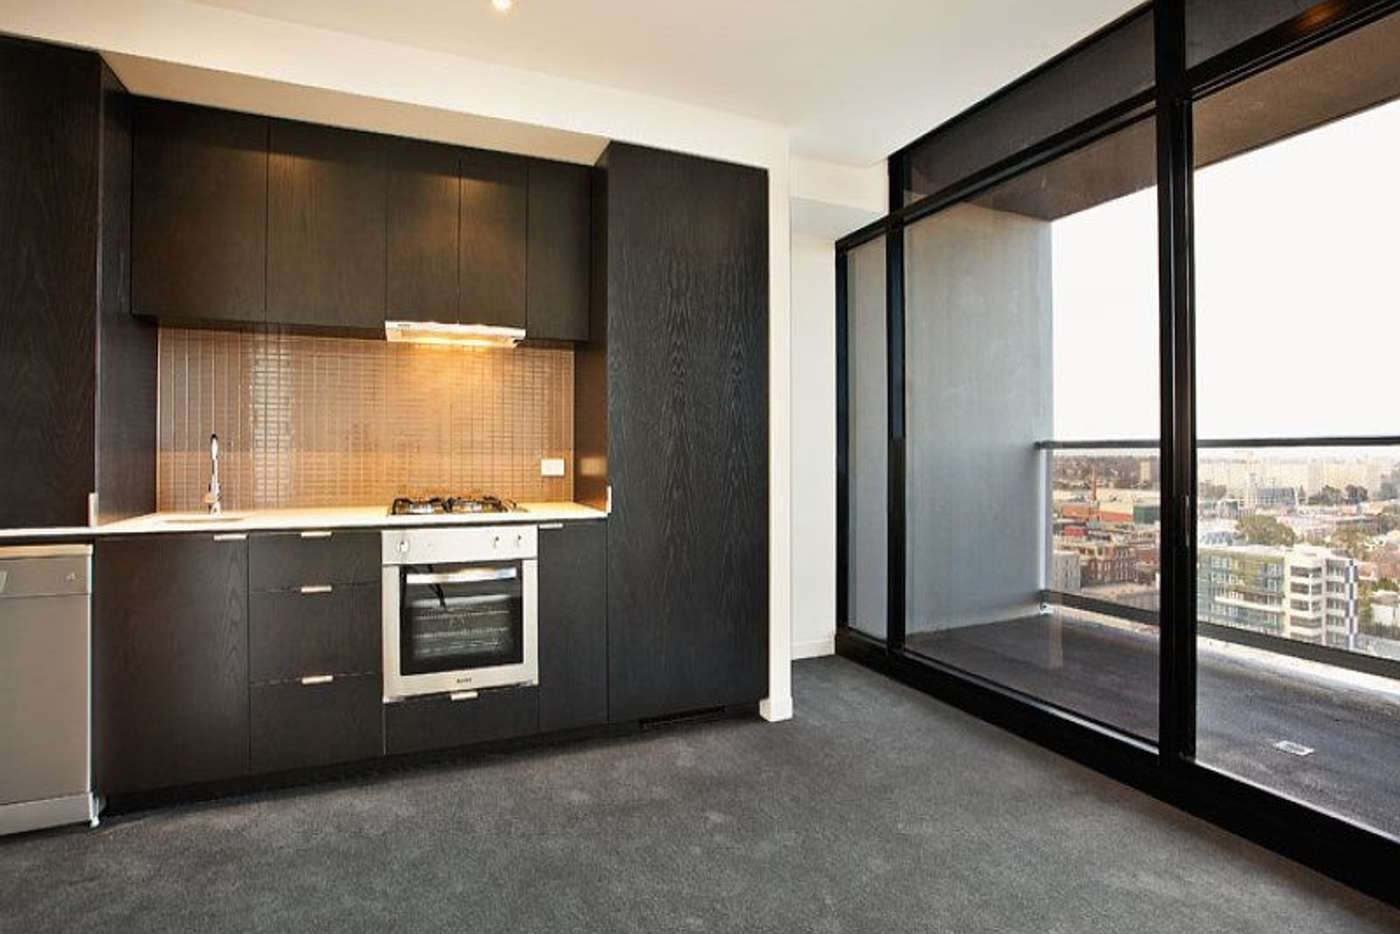 Main view of Homely apartment listing, 1604/7 Yarra Street, South Yarra VIC 3141